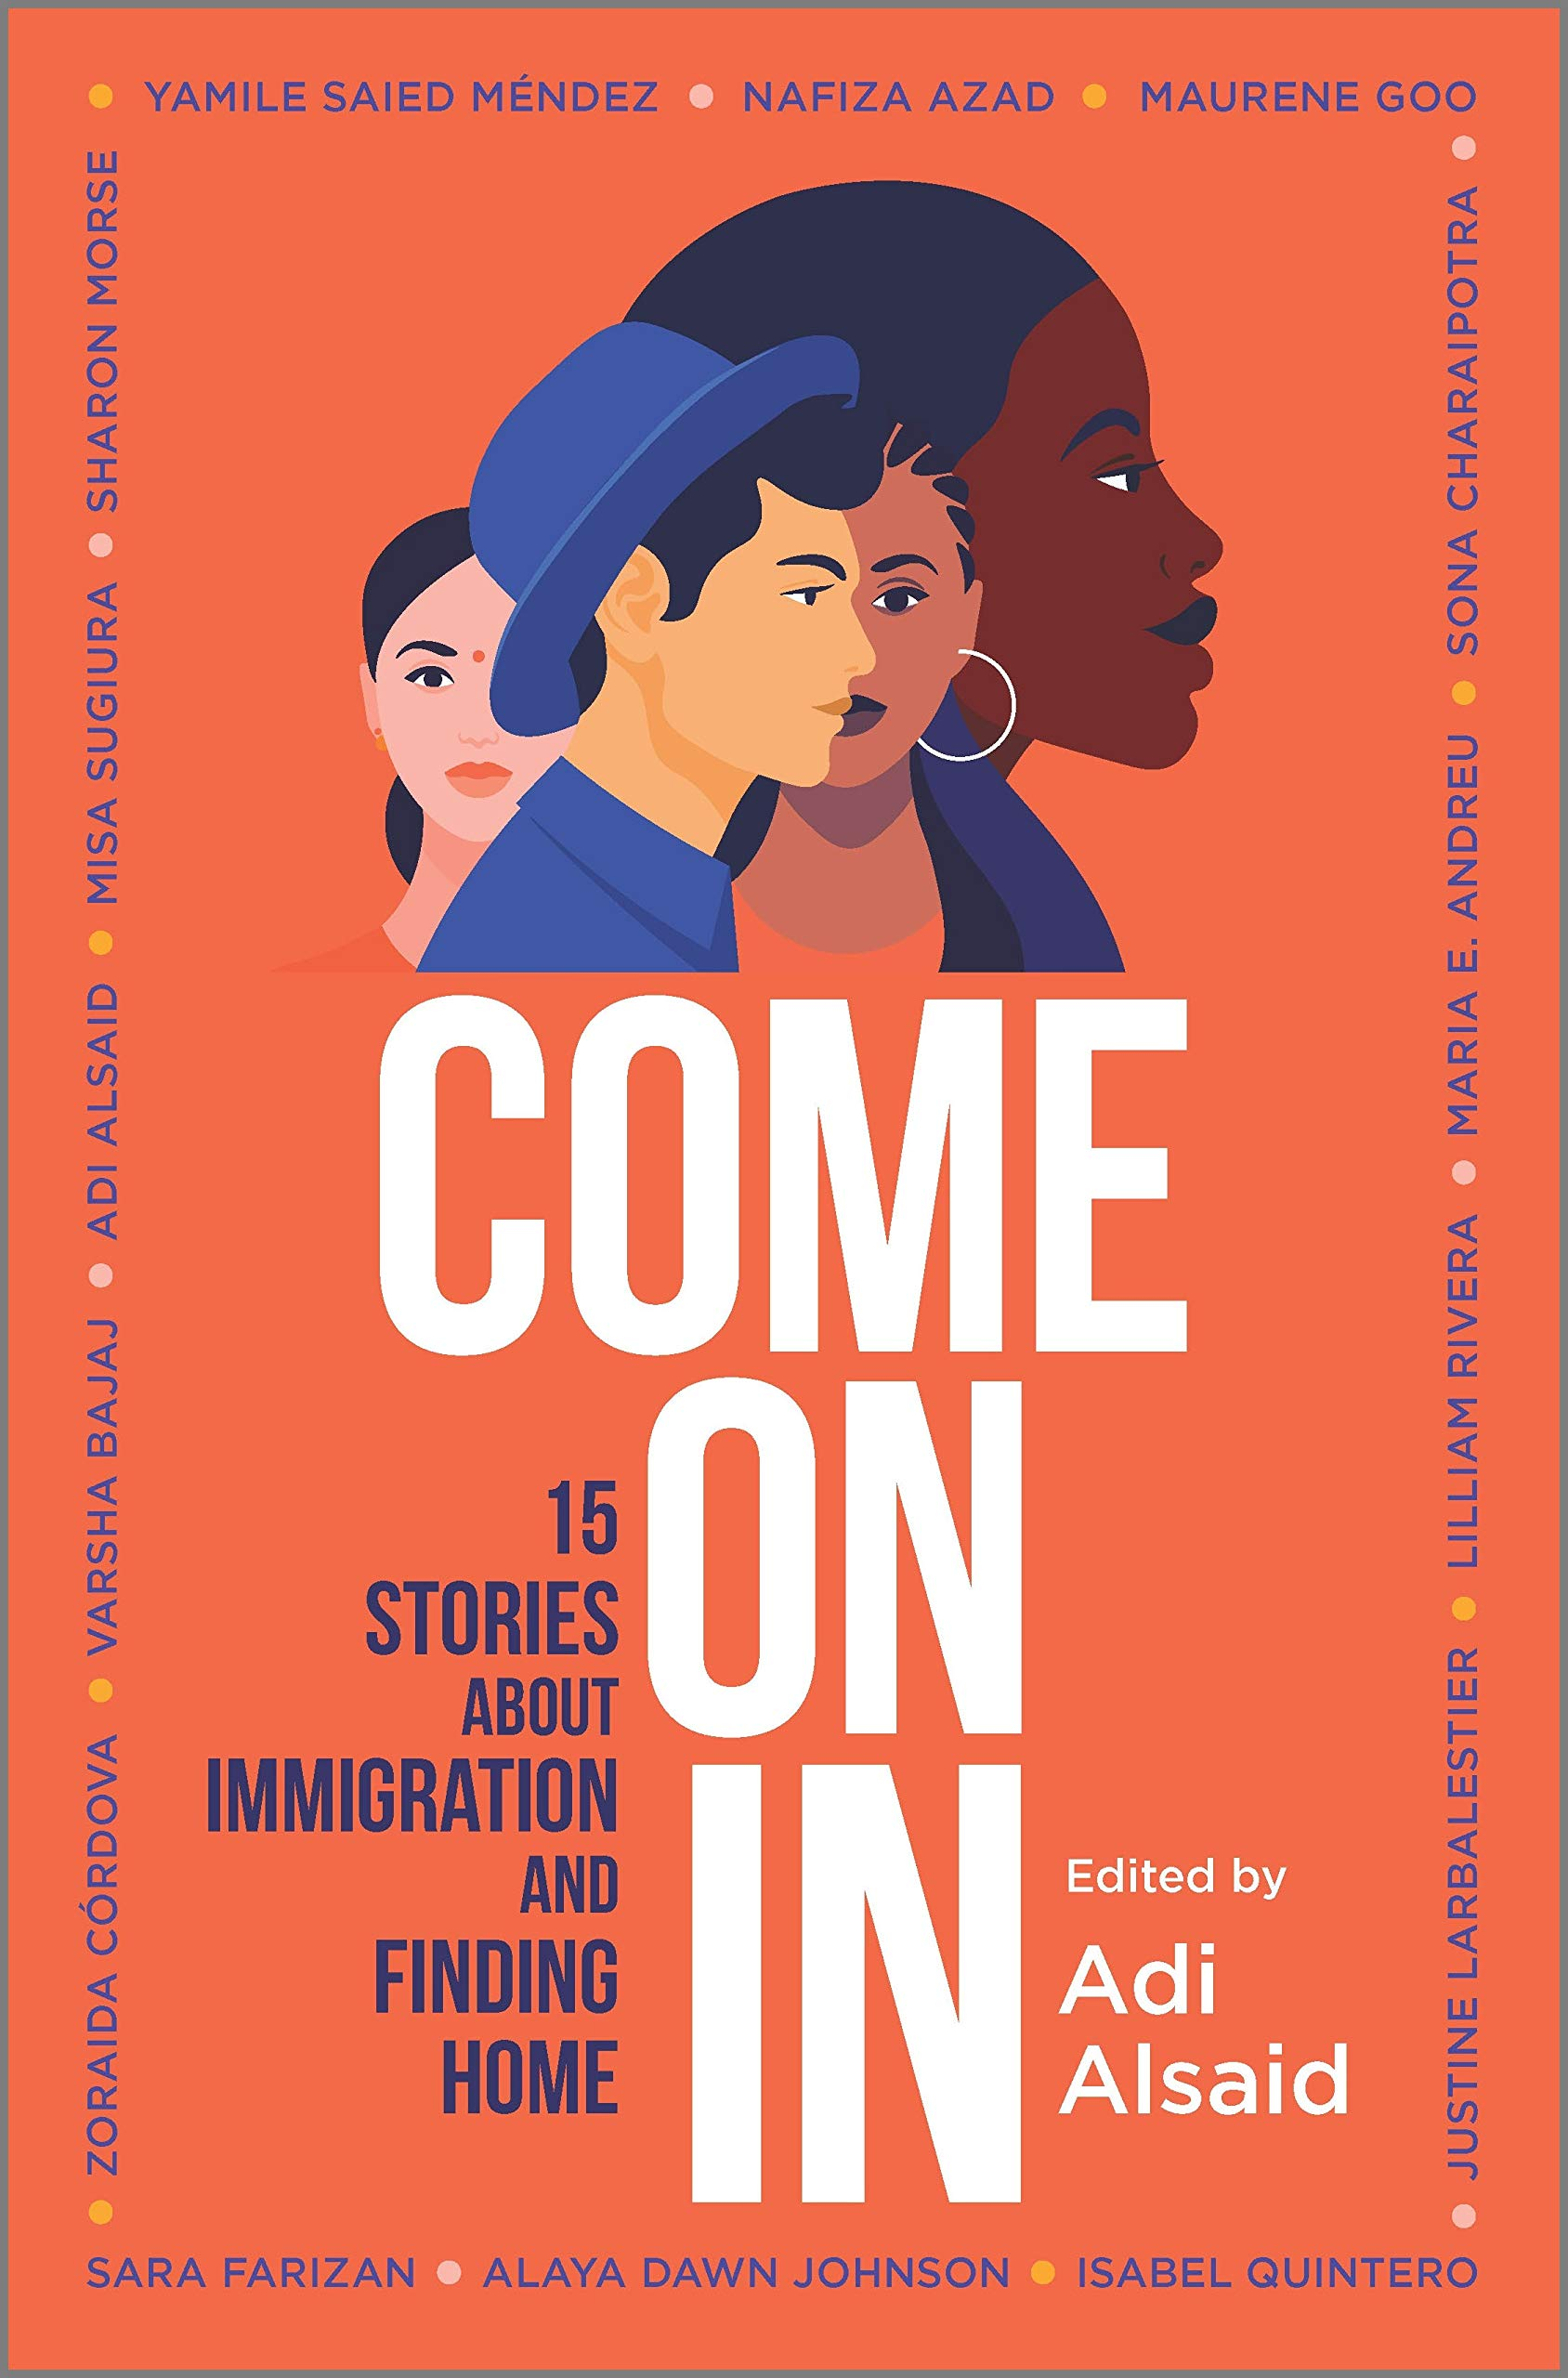 Amazon.com: Come On In: 15 Stories about Immigration and Finding Home  (9781335146496): Alsaid, Adi: Books